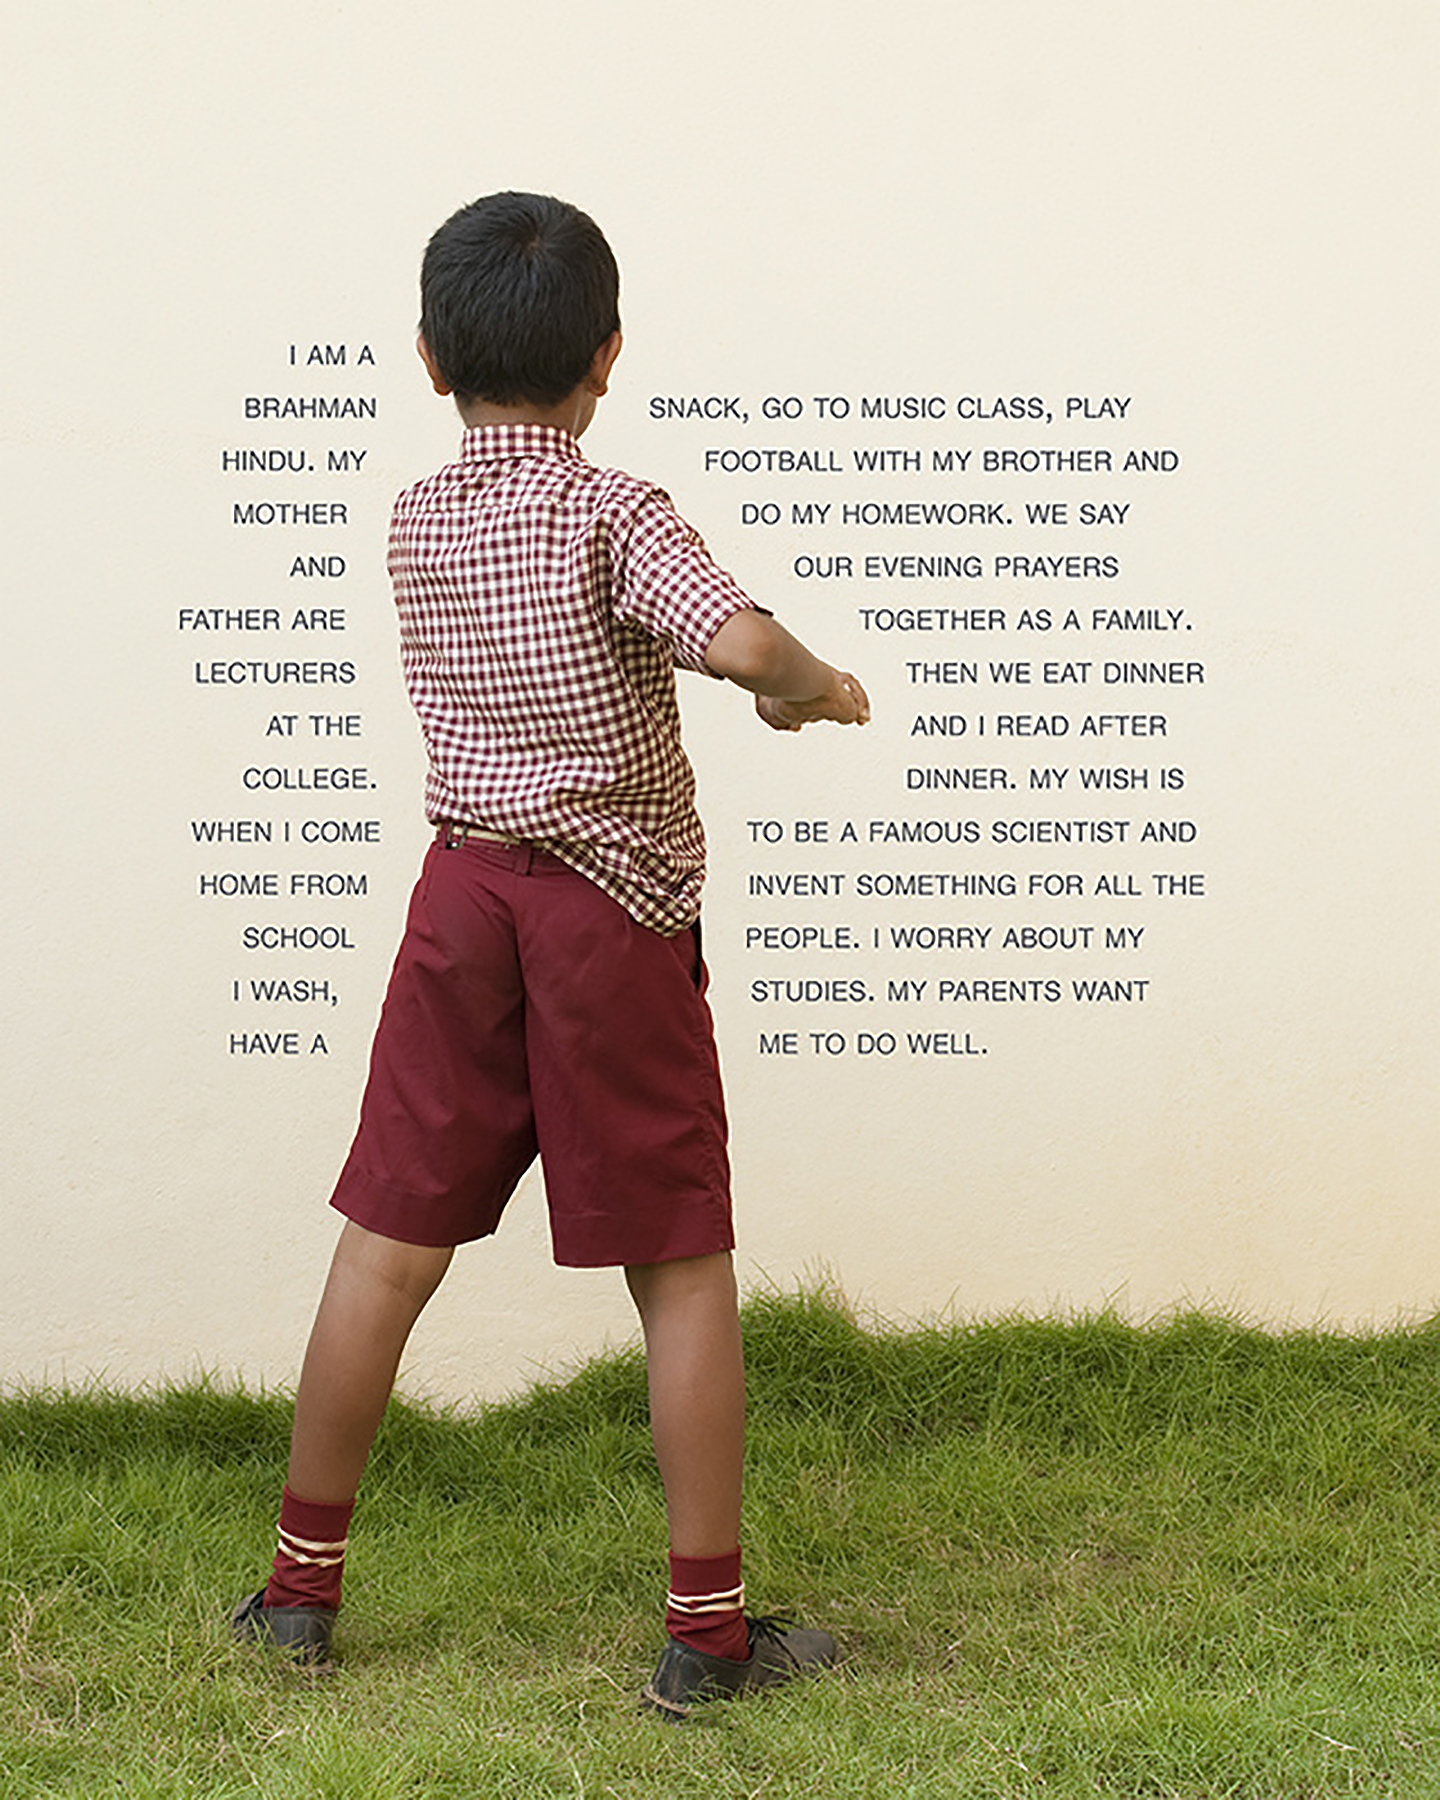 Fourth Grade - Do Well (India: Private School), 25 x 20 inches / 63.5 x 50.8 cm, archival pigment print, edition 1/5, 2010